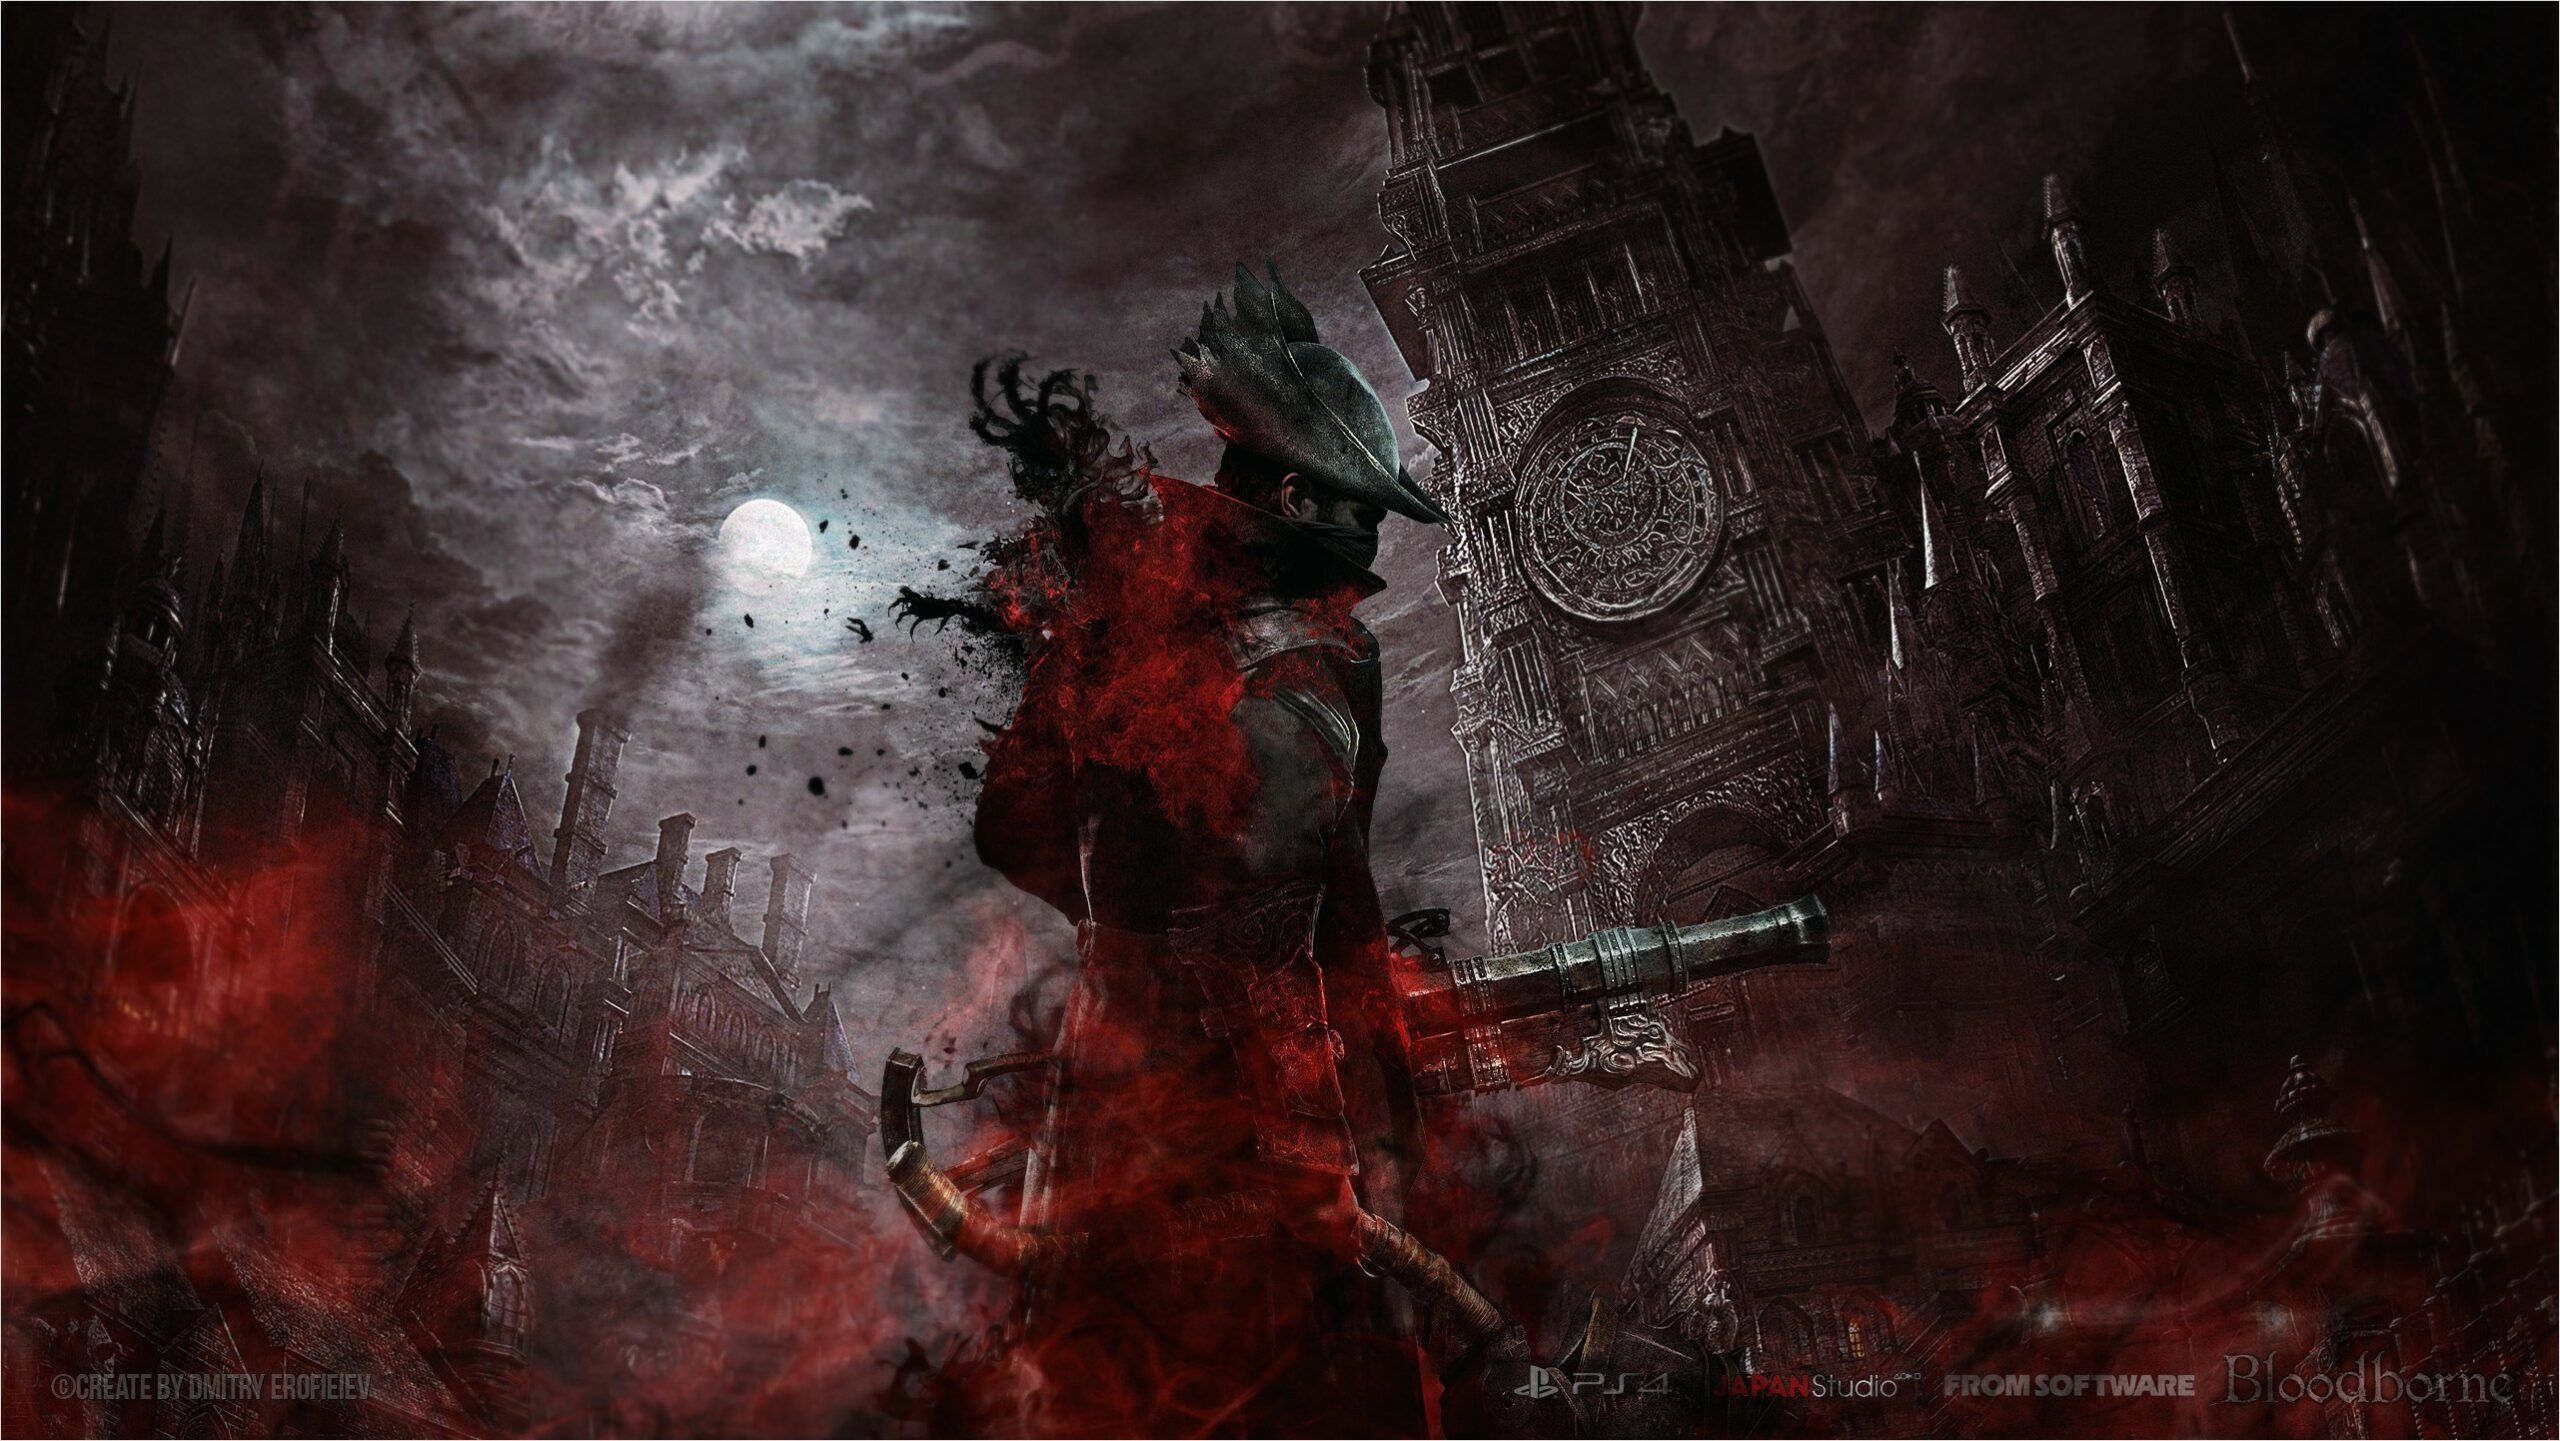 1440 X 2960 Wallpaper 4k Bloodborne in 2020 Bloodborne